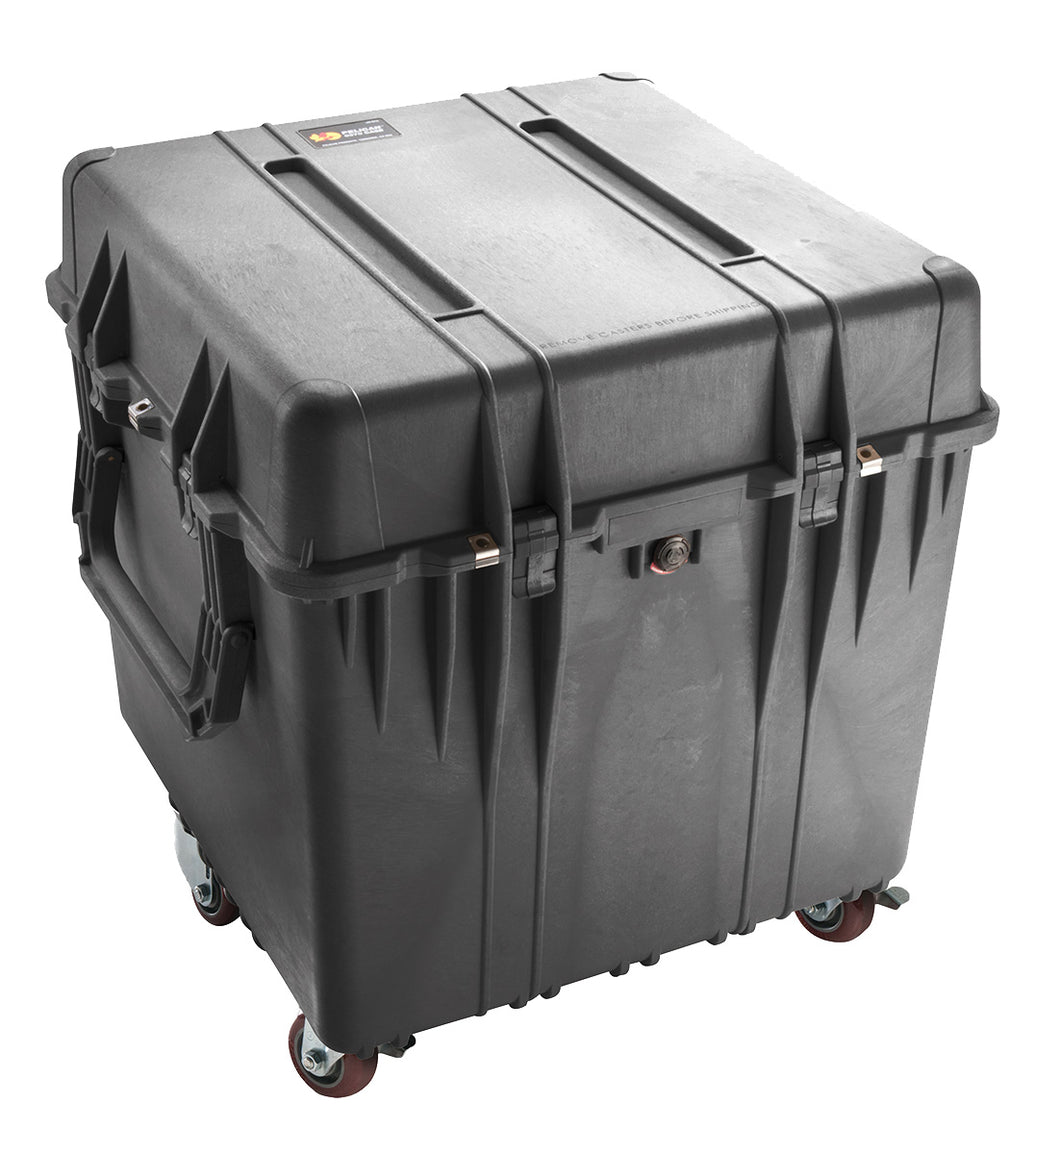 Pelican 0370 Protector Cube Case with foam - CEG & Supply LLC